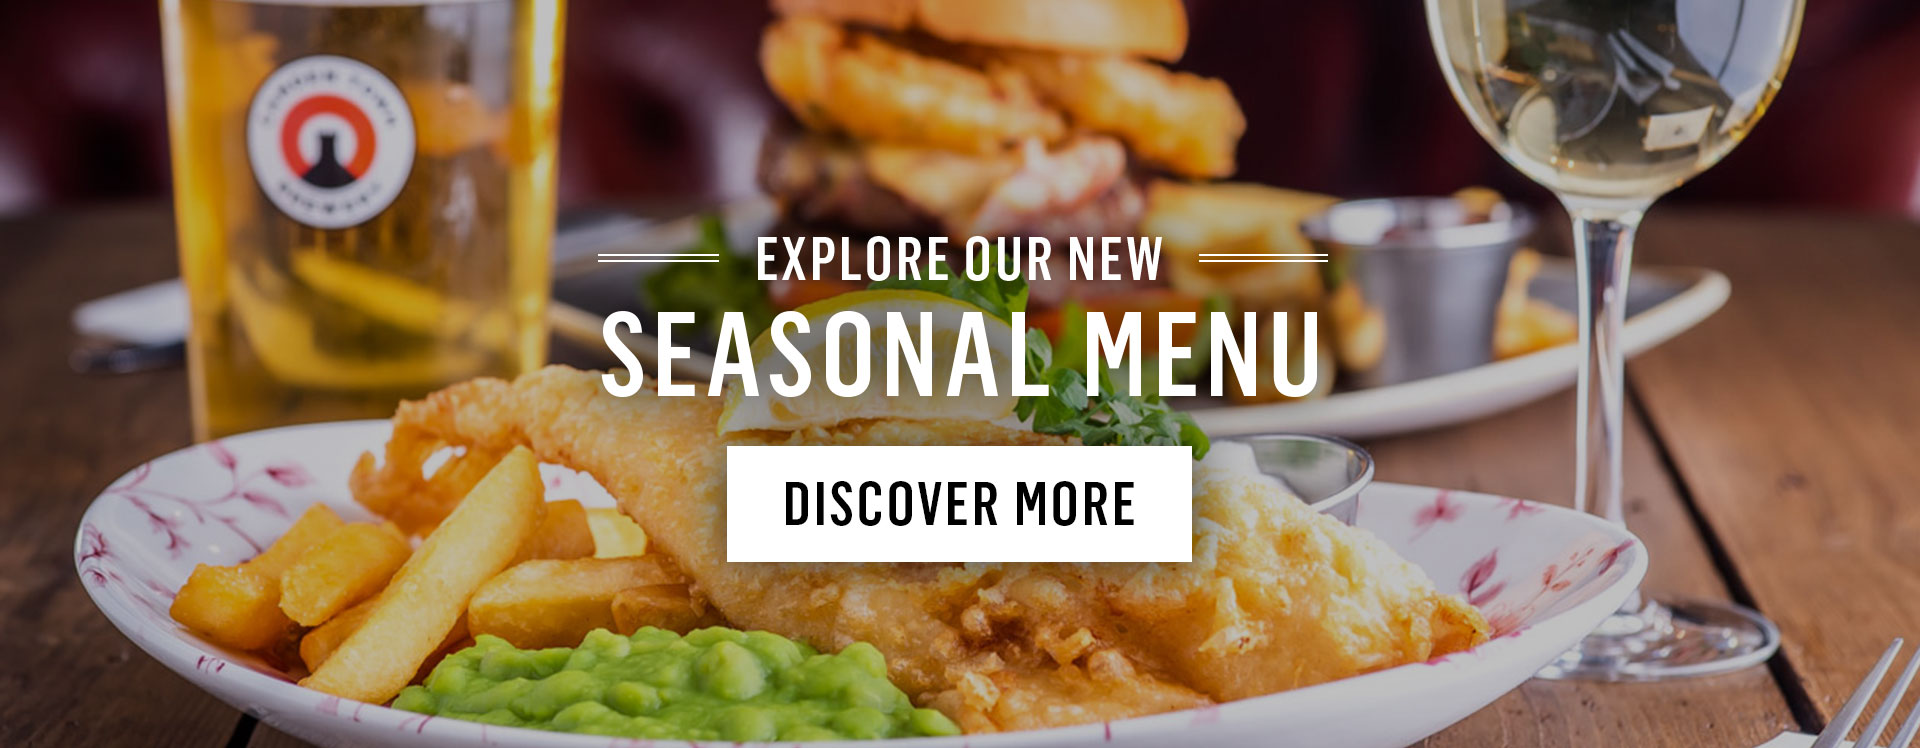 New Menu at The Conan Doyle